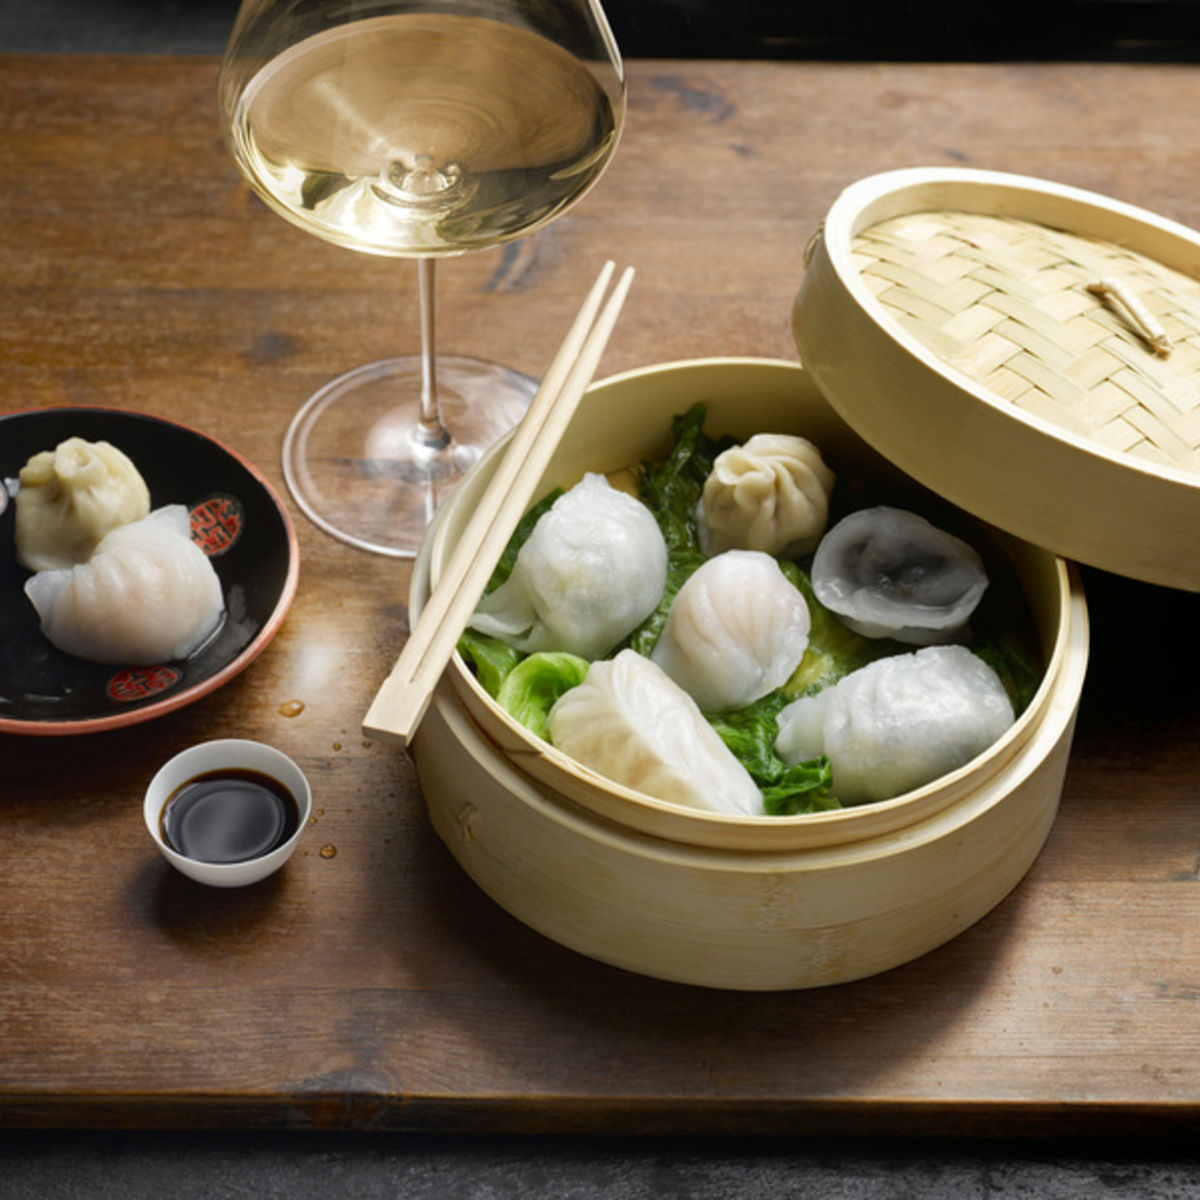 The picture shows steamed dumplings with a glass of white wine.